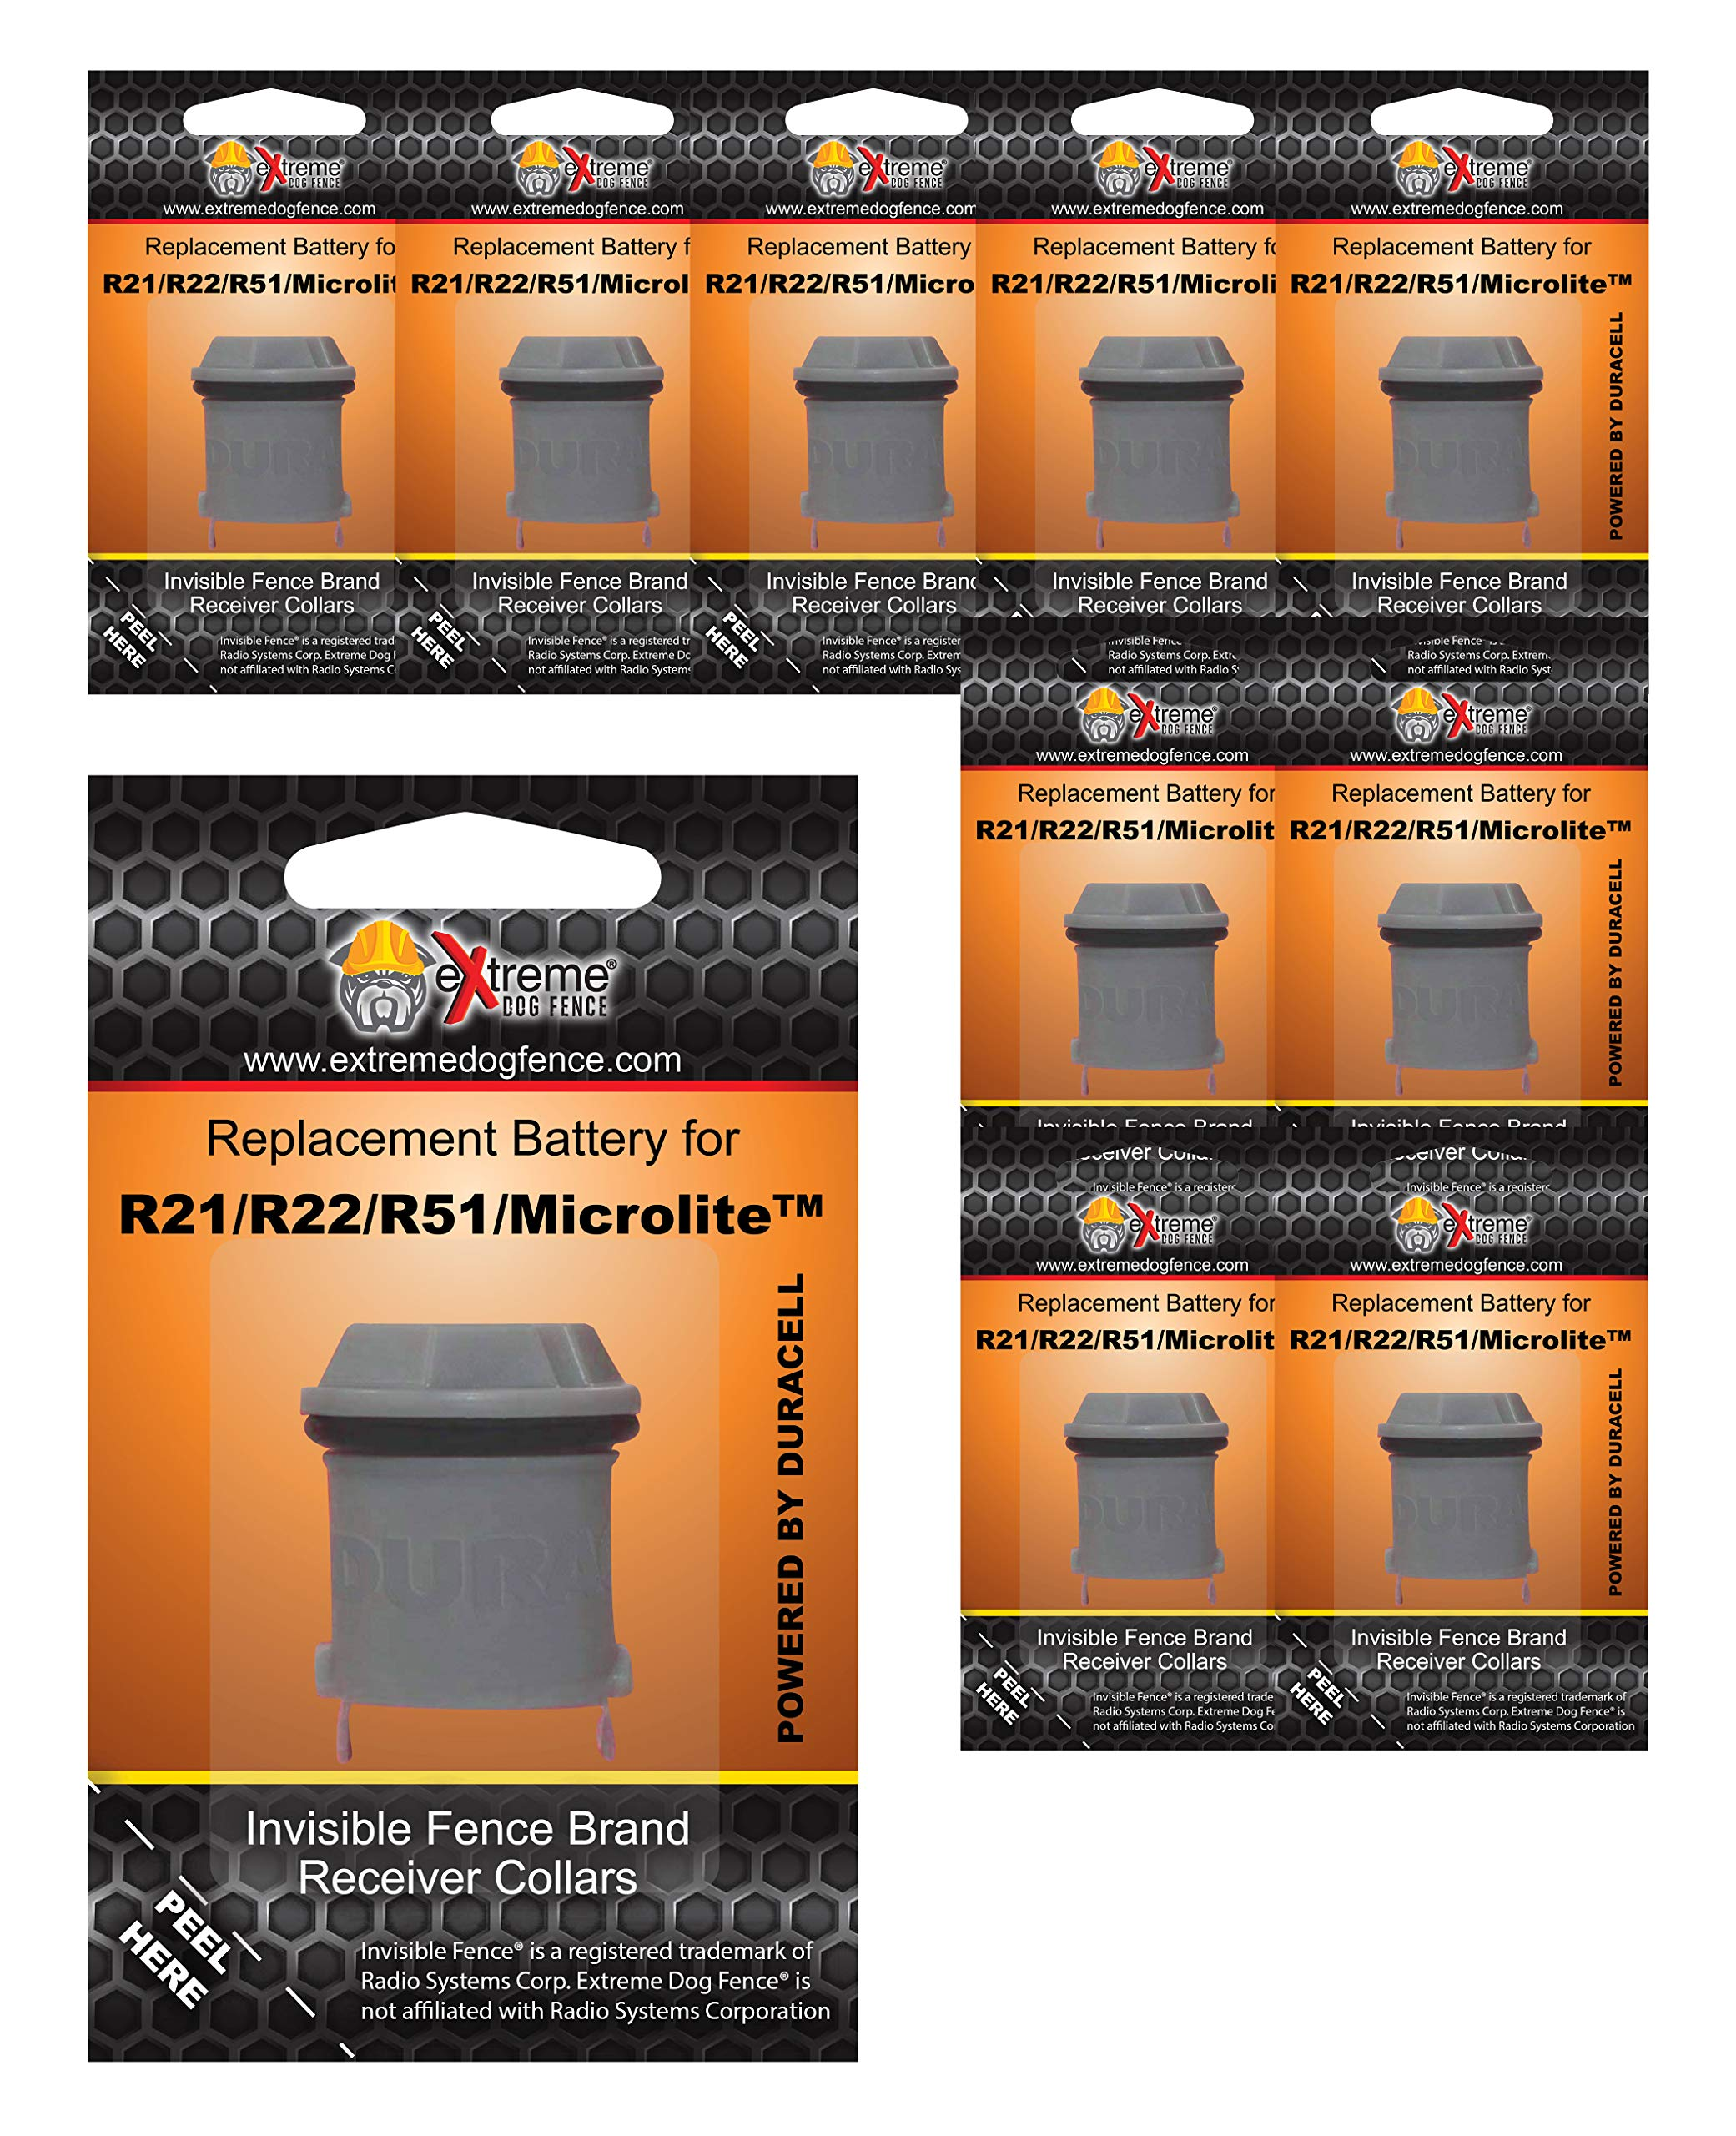 Extreme Dog Fence Invisible Fence Brand Compatible Batteries Brand - 10 Pack by Extreme Dog Fence